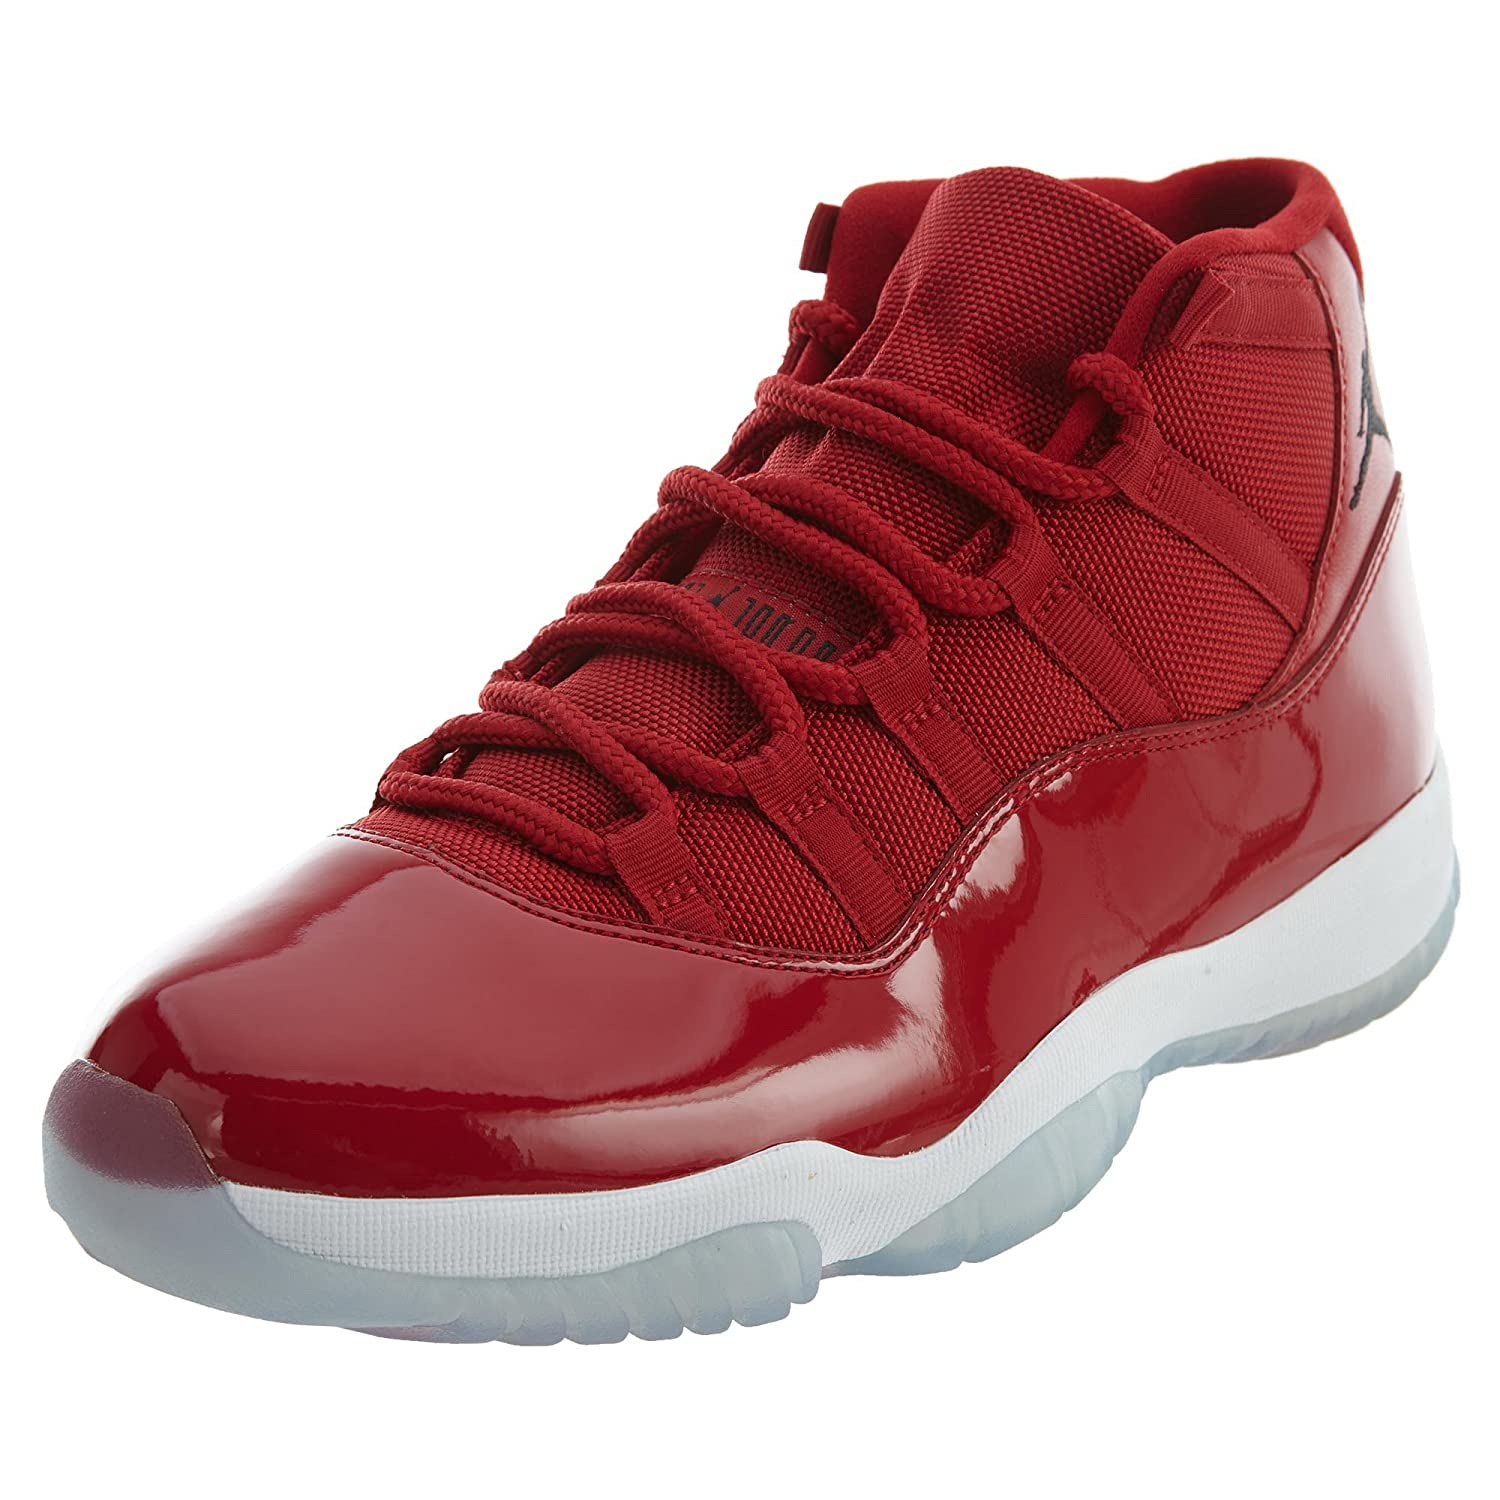 super popular a6f44 22cb4 Amazon.com | Air Jordan 11 Retro